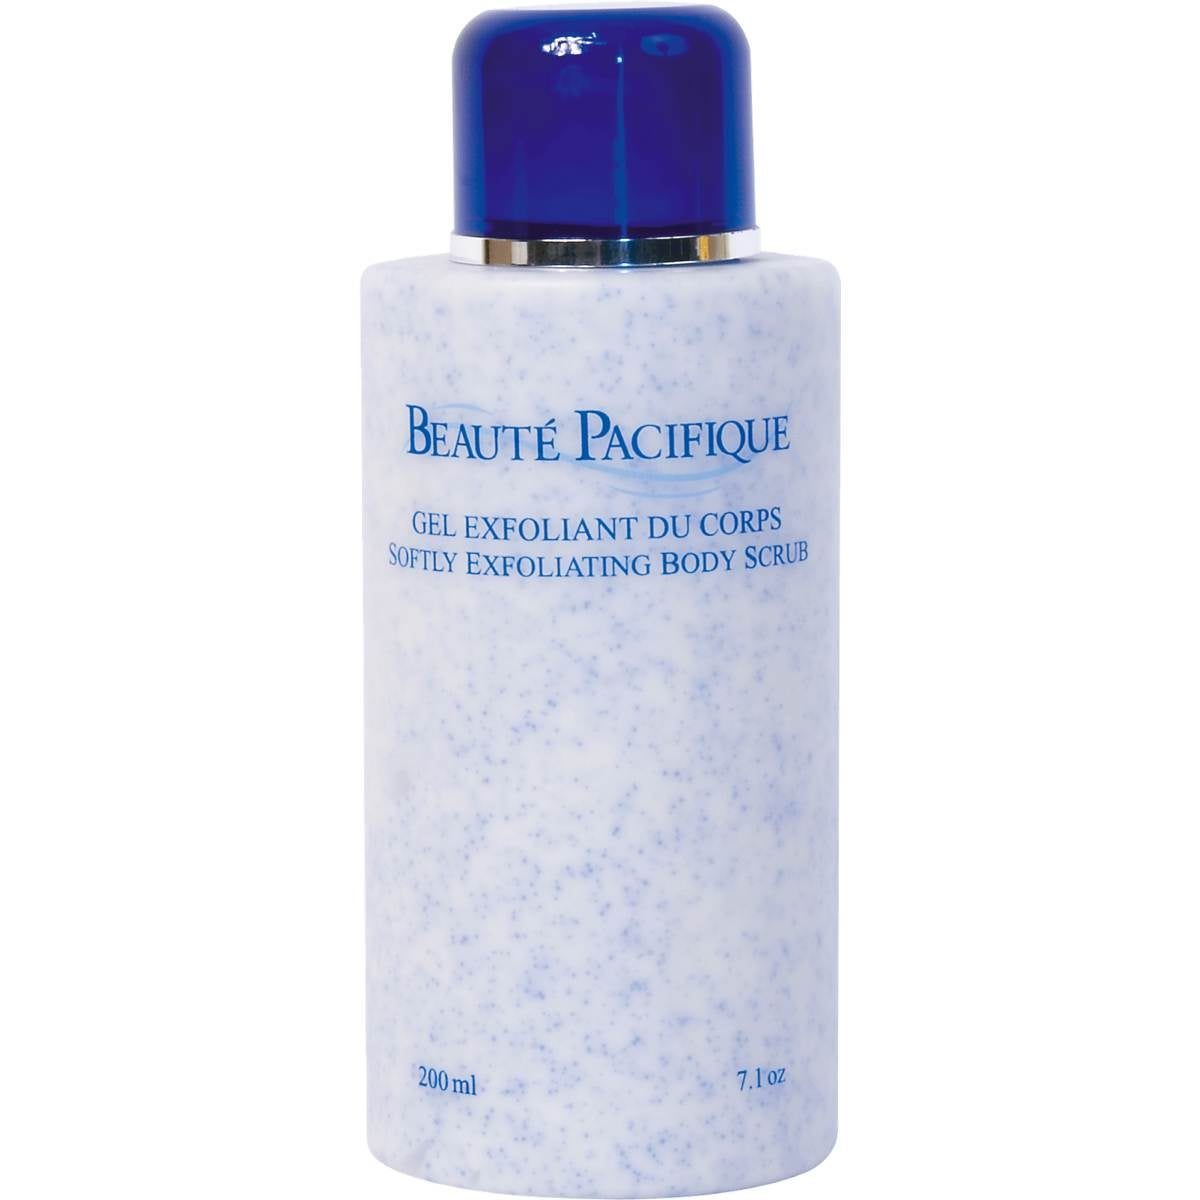 Beauté Pacifique Softly Exfoliating Body Scrub